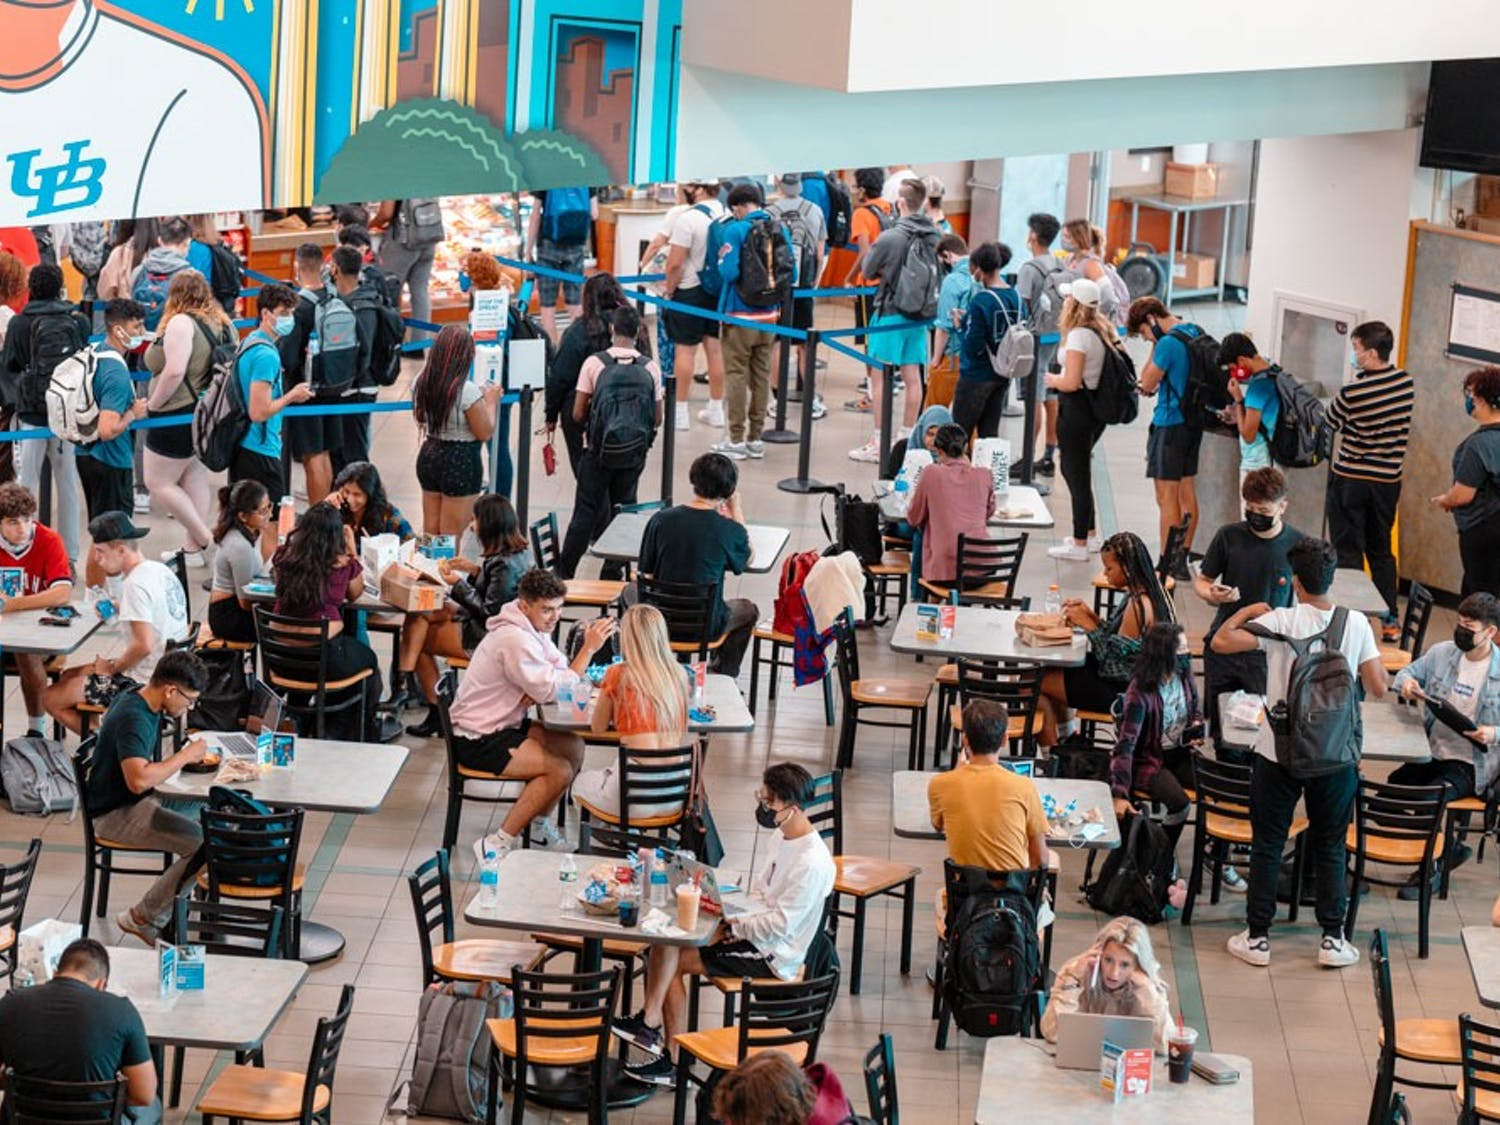 Students grab food, chat with friends and do work at the Student Union this fall.